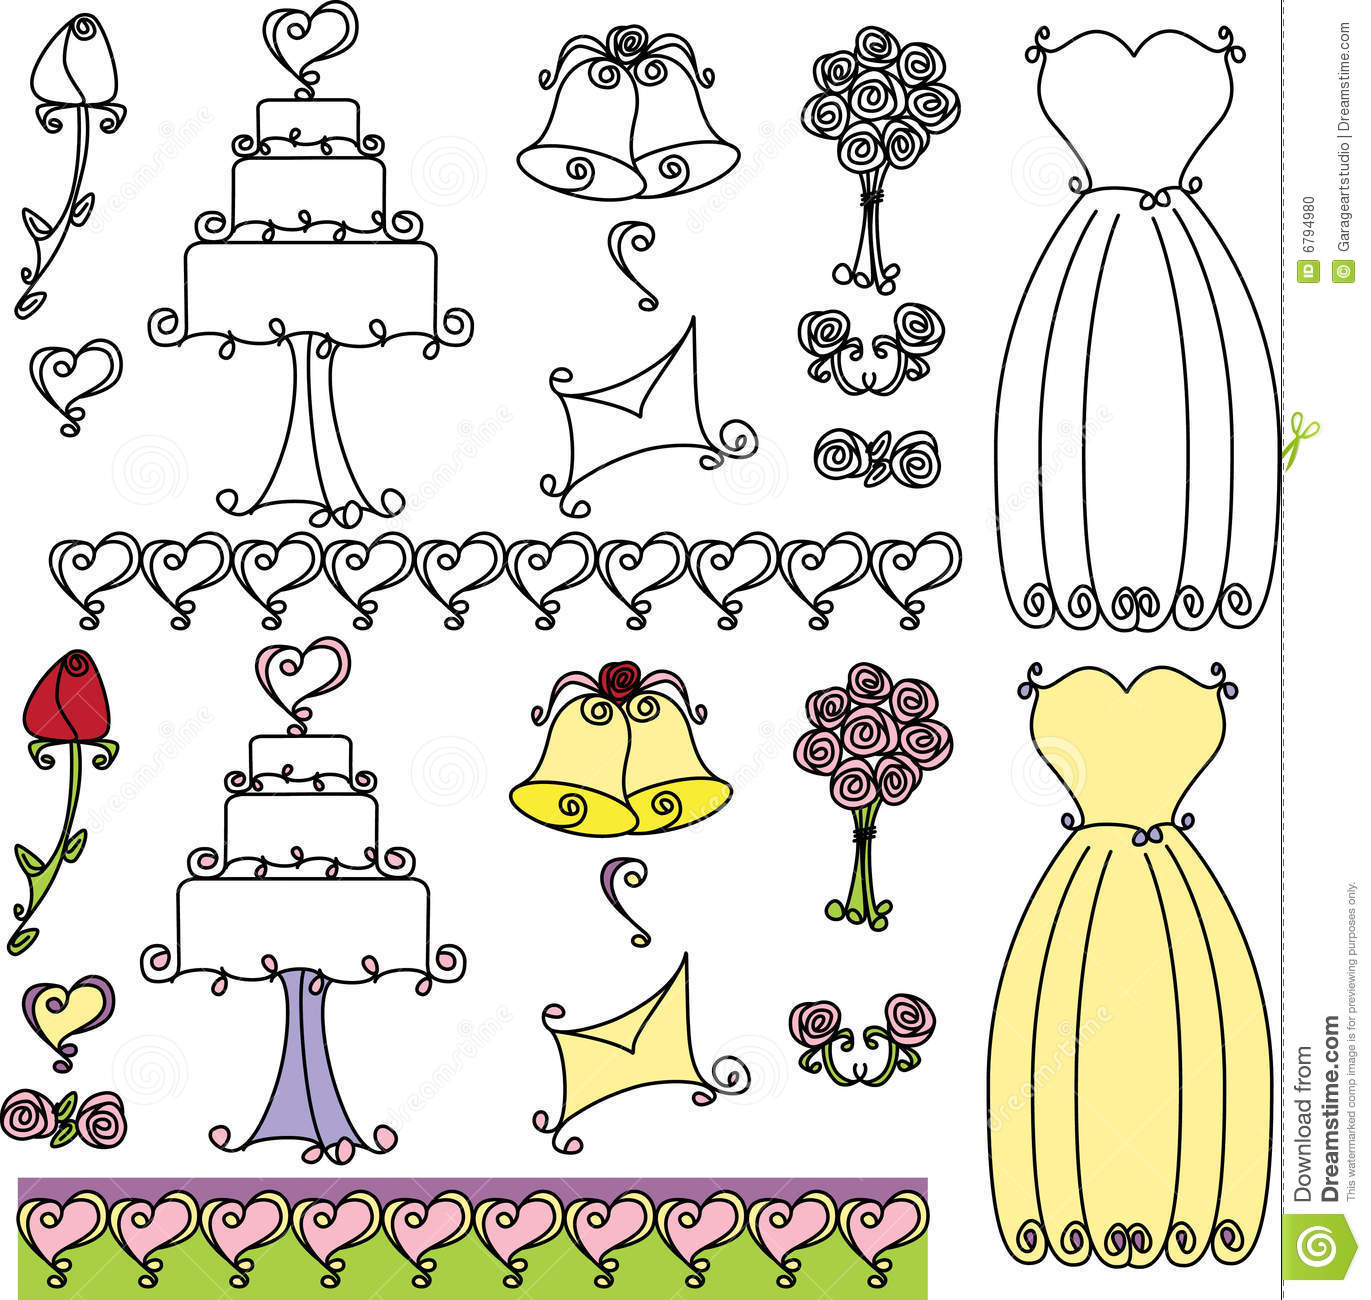 Wedding shower clip art jpg stock Wedding Shower Clip Art Stock Photo - Image: 6794980 jpg stock